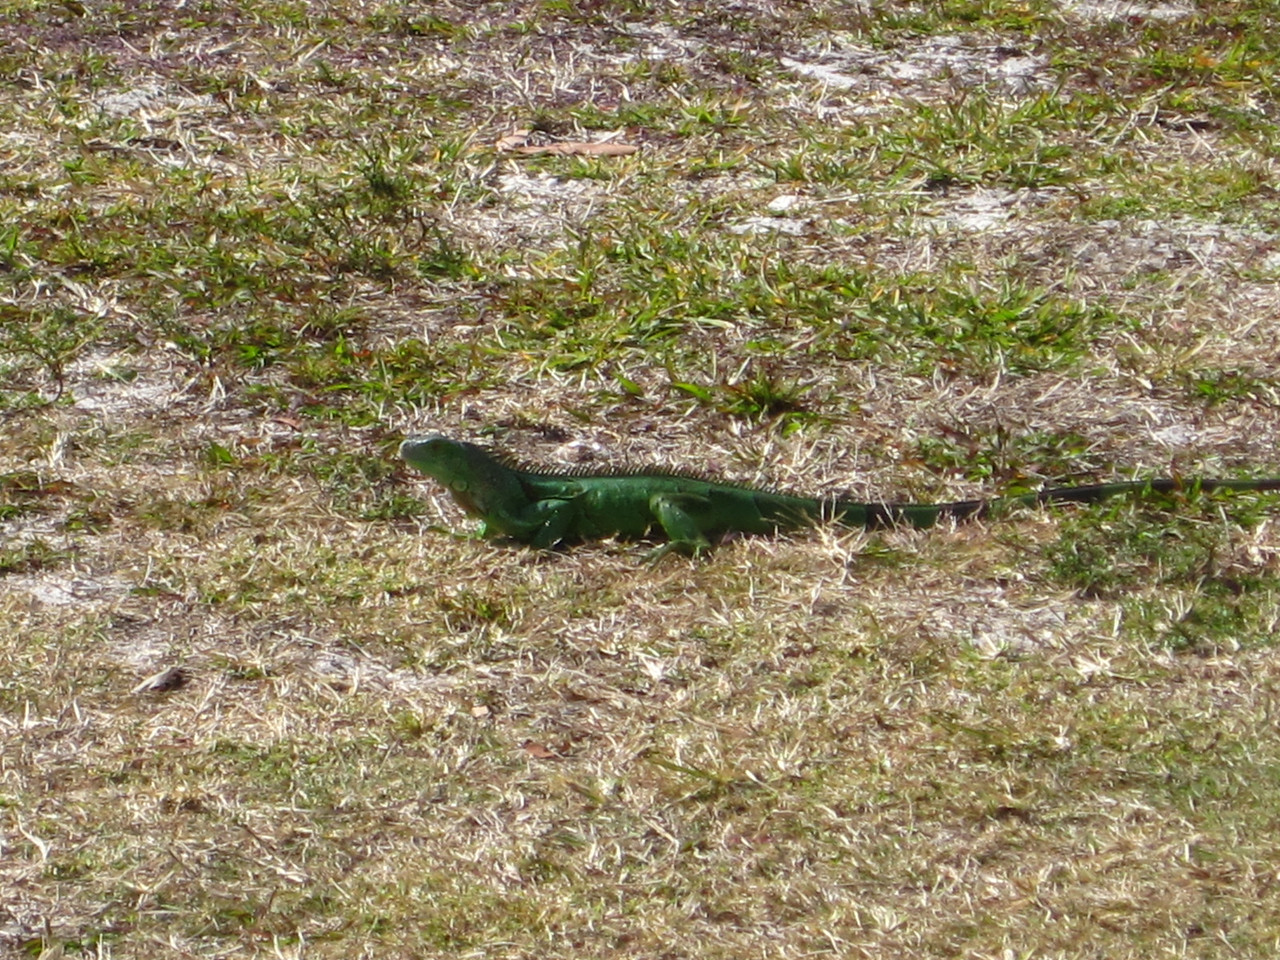 Local visitor common to Key Biscayne